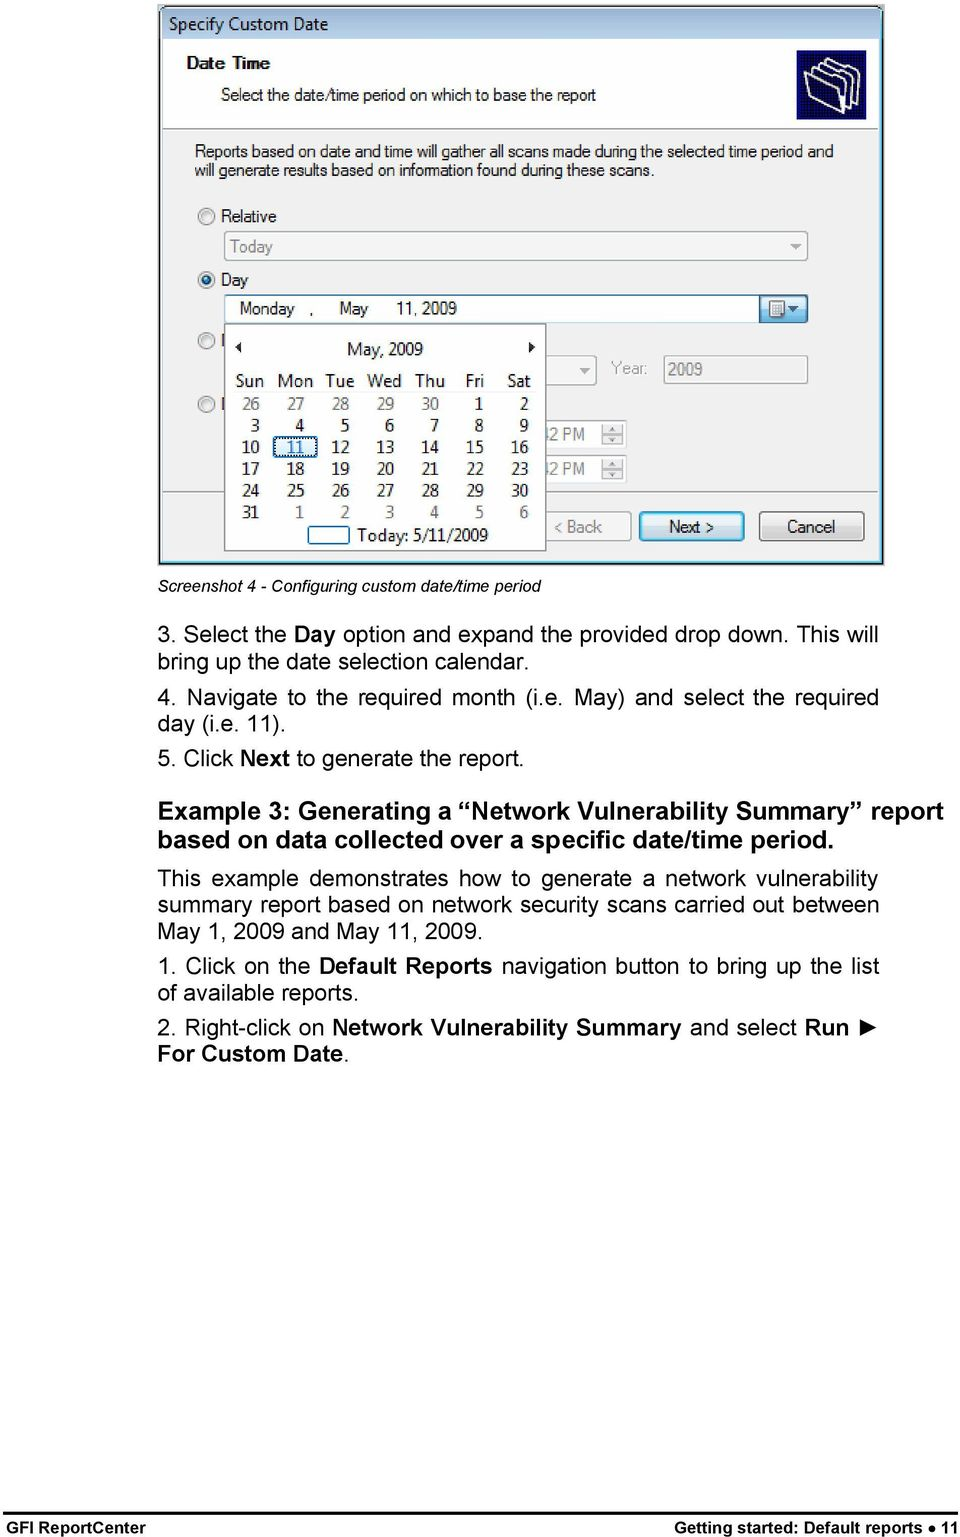 Example 3: Generating a Network Vulnerability Summary report based on data collected over a specific date/time period.